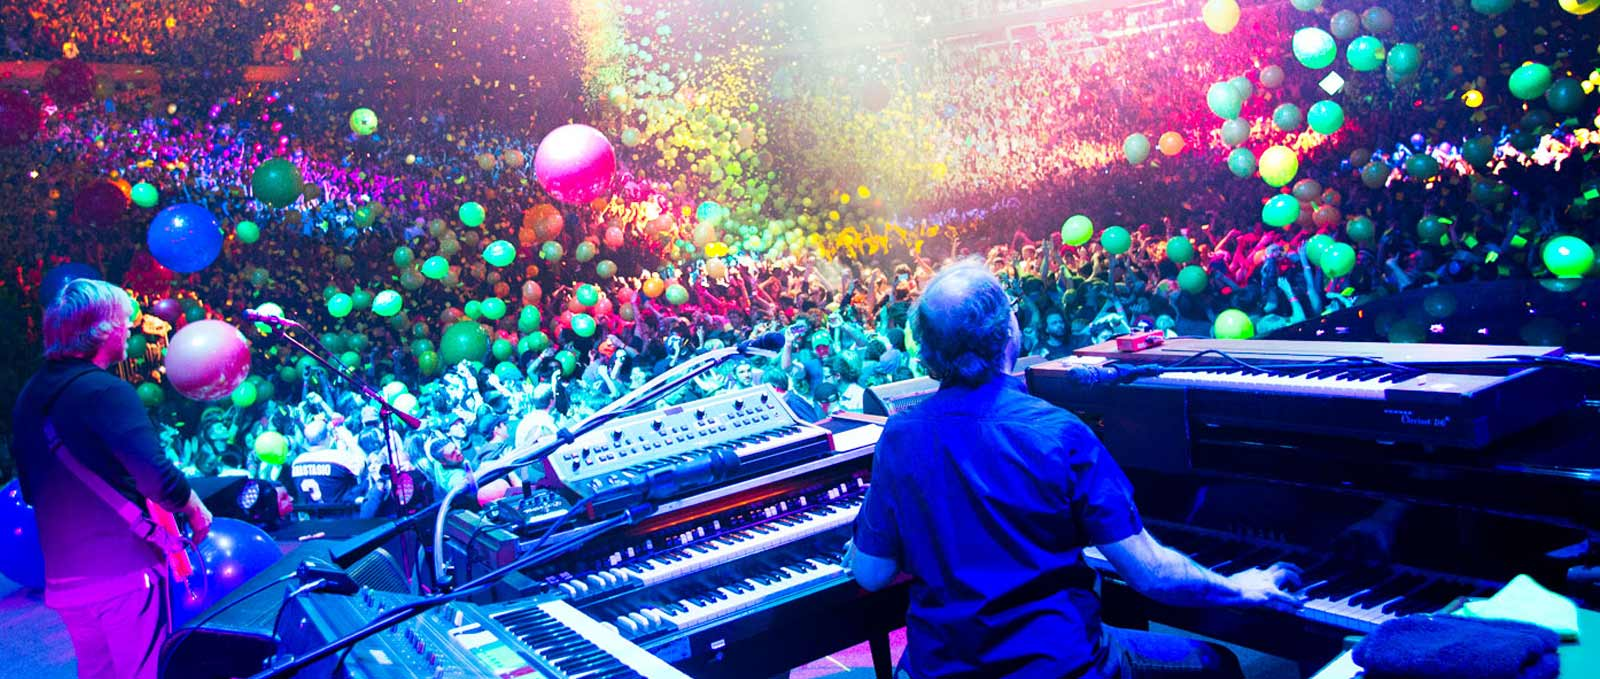 Phish Events, Twitter Ranked By Importance